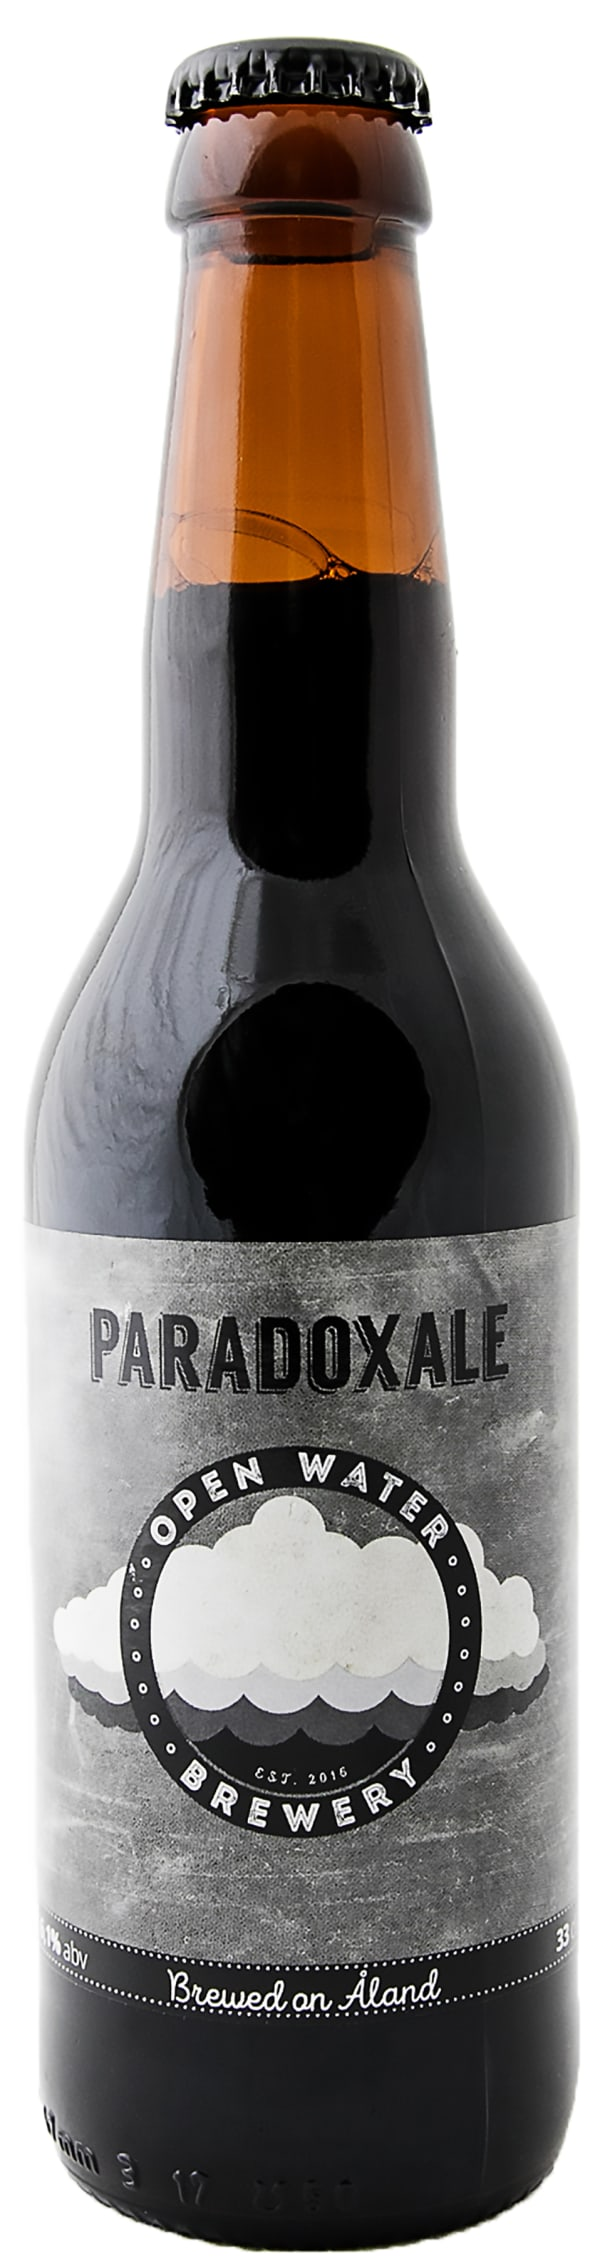 Open Water Paradoxale